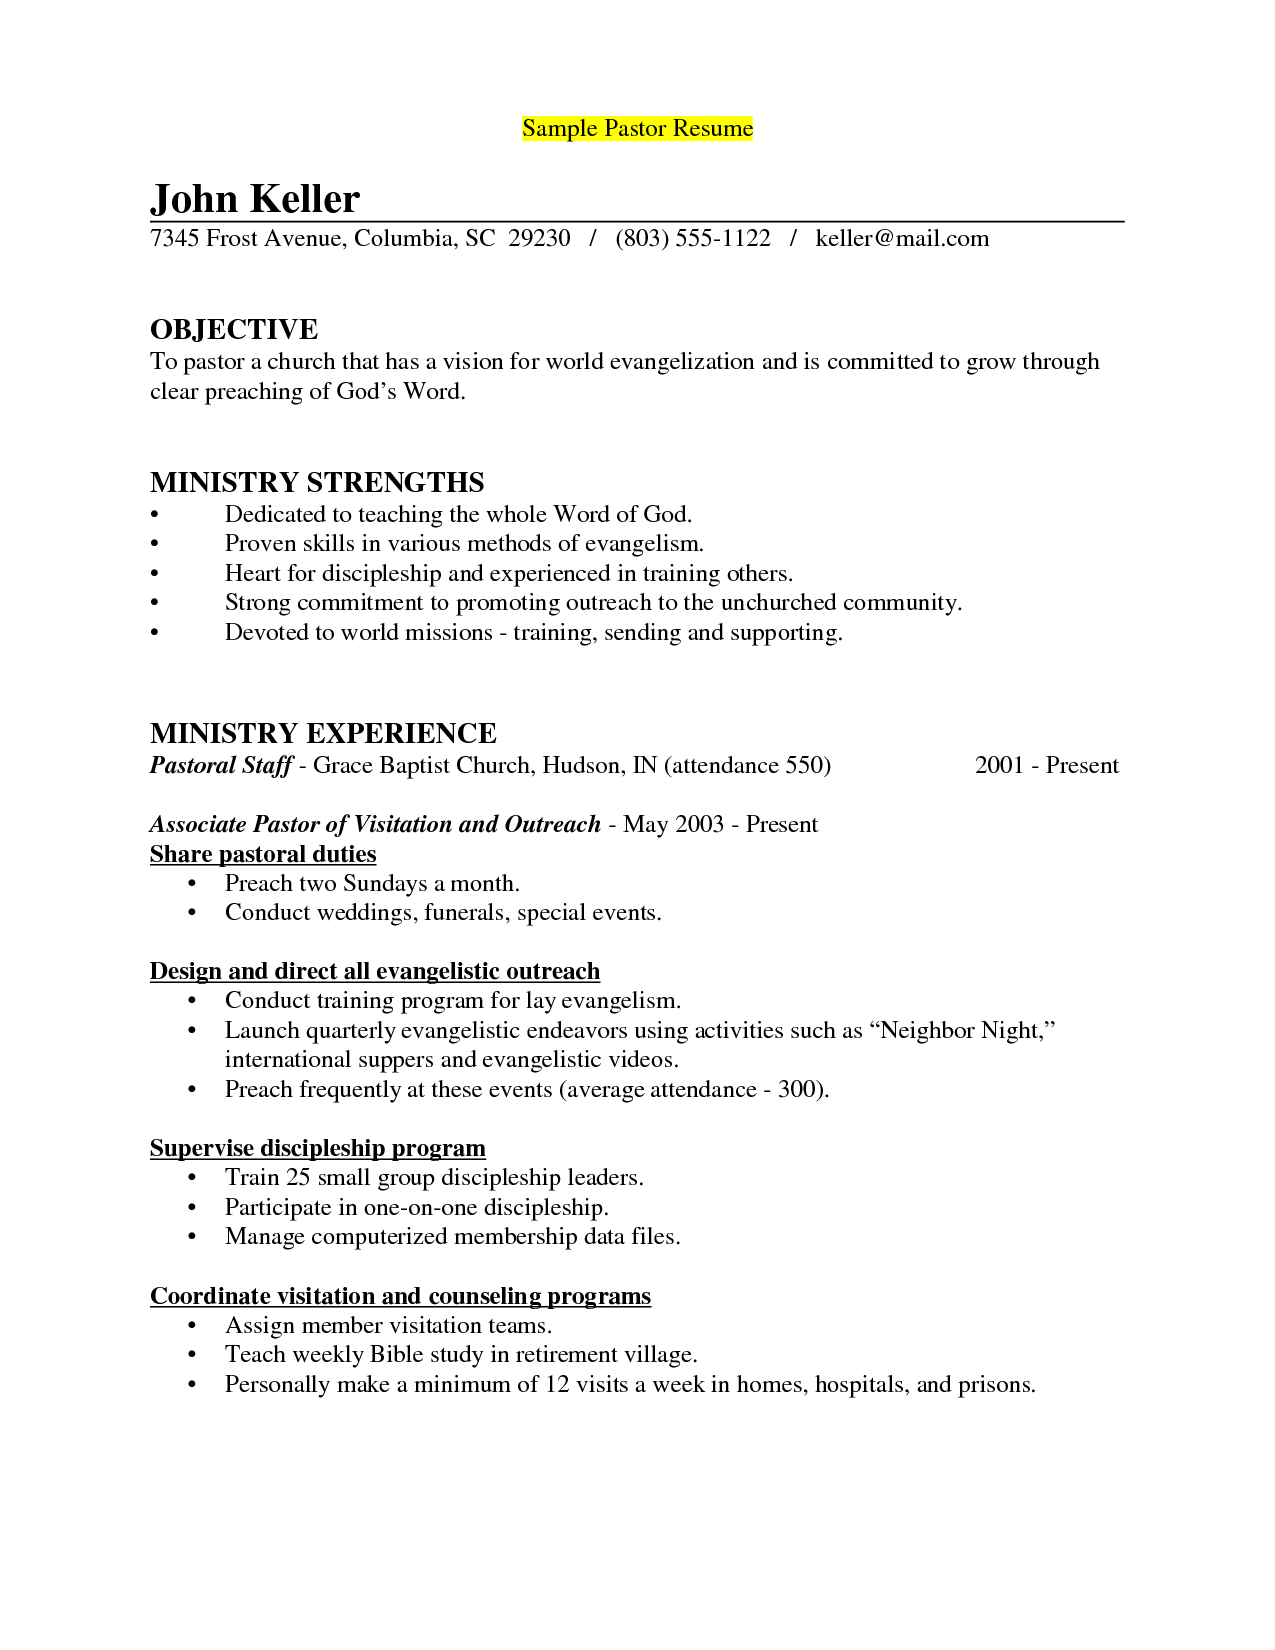 Resumes Examples Sample Of A Pastors Resume  Sample Resumes For Senior Pastors